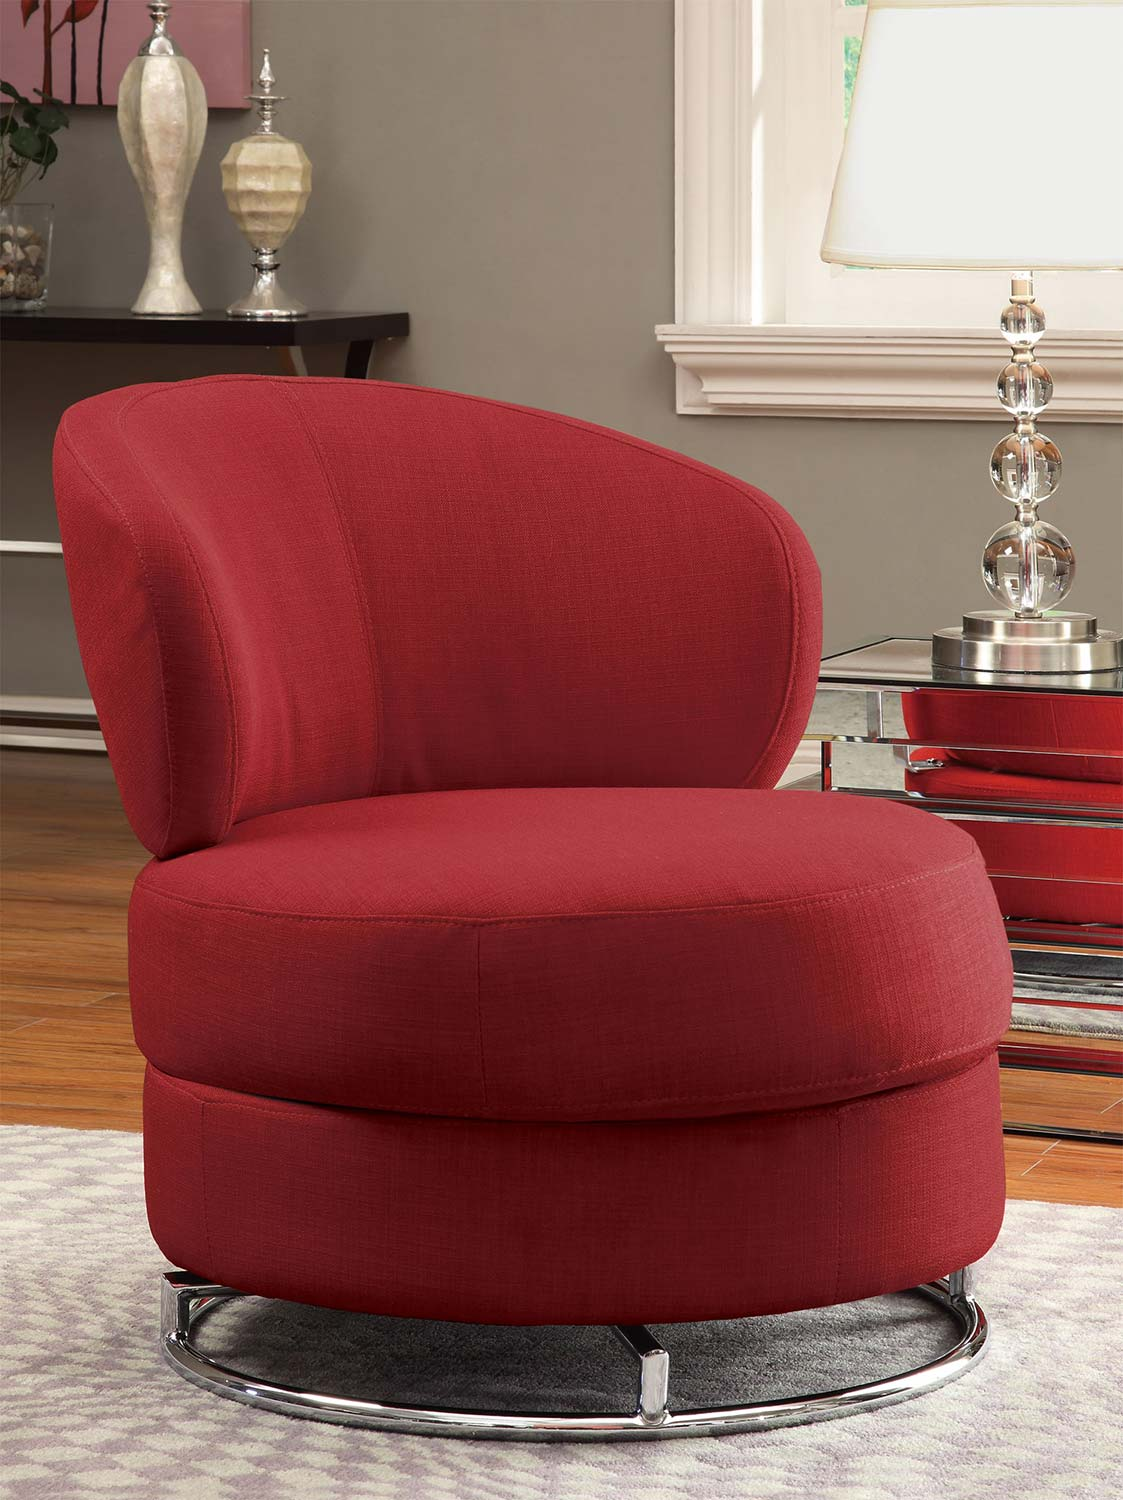 Coaster 902104 Swivel Chair - Red - Chrome